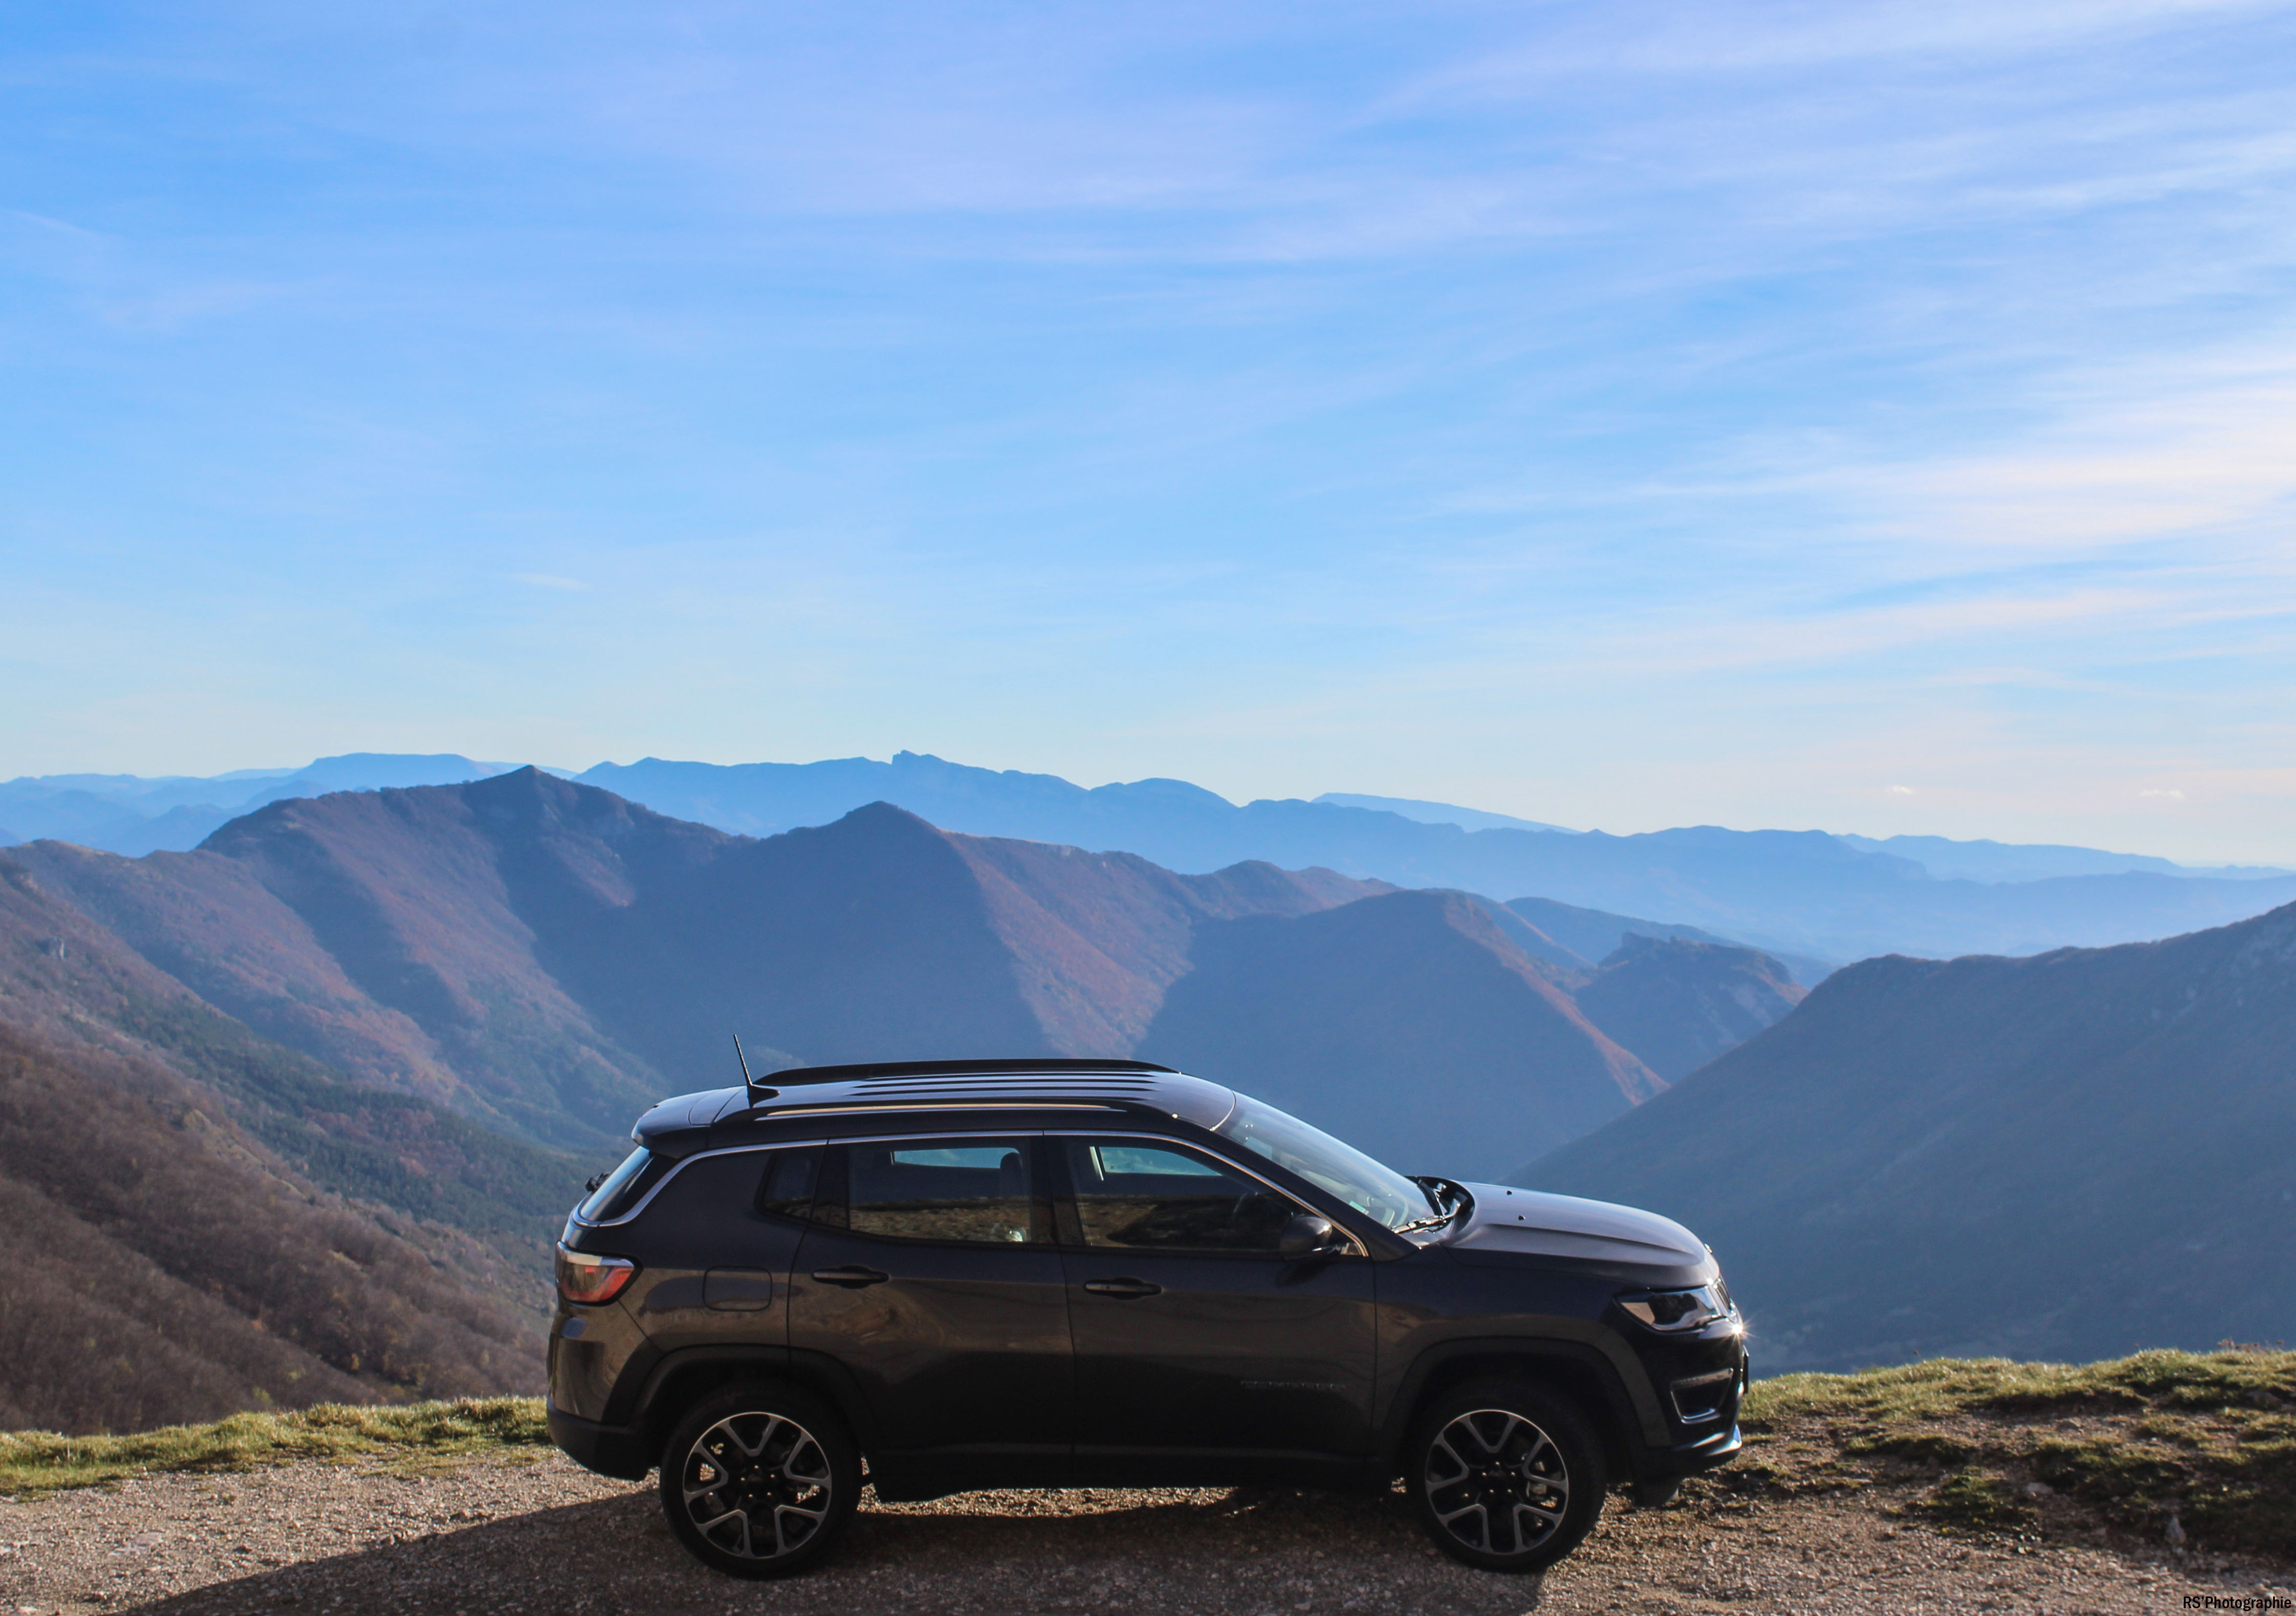 jeepcompass58-jeep-compass-profil-side-Arnaud Demasier-RSPhotographie